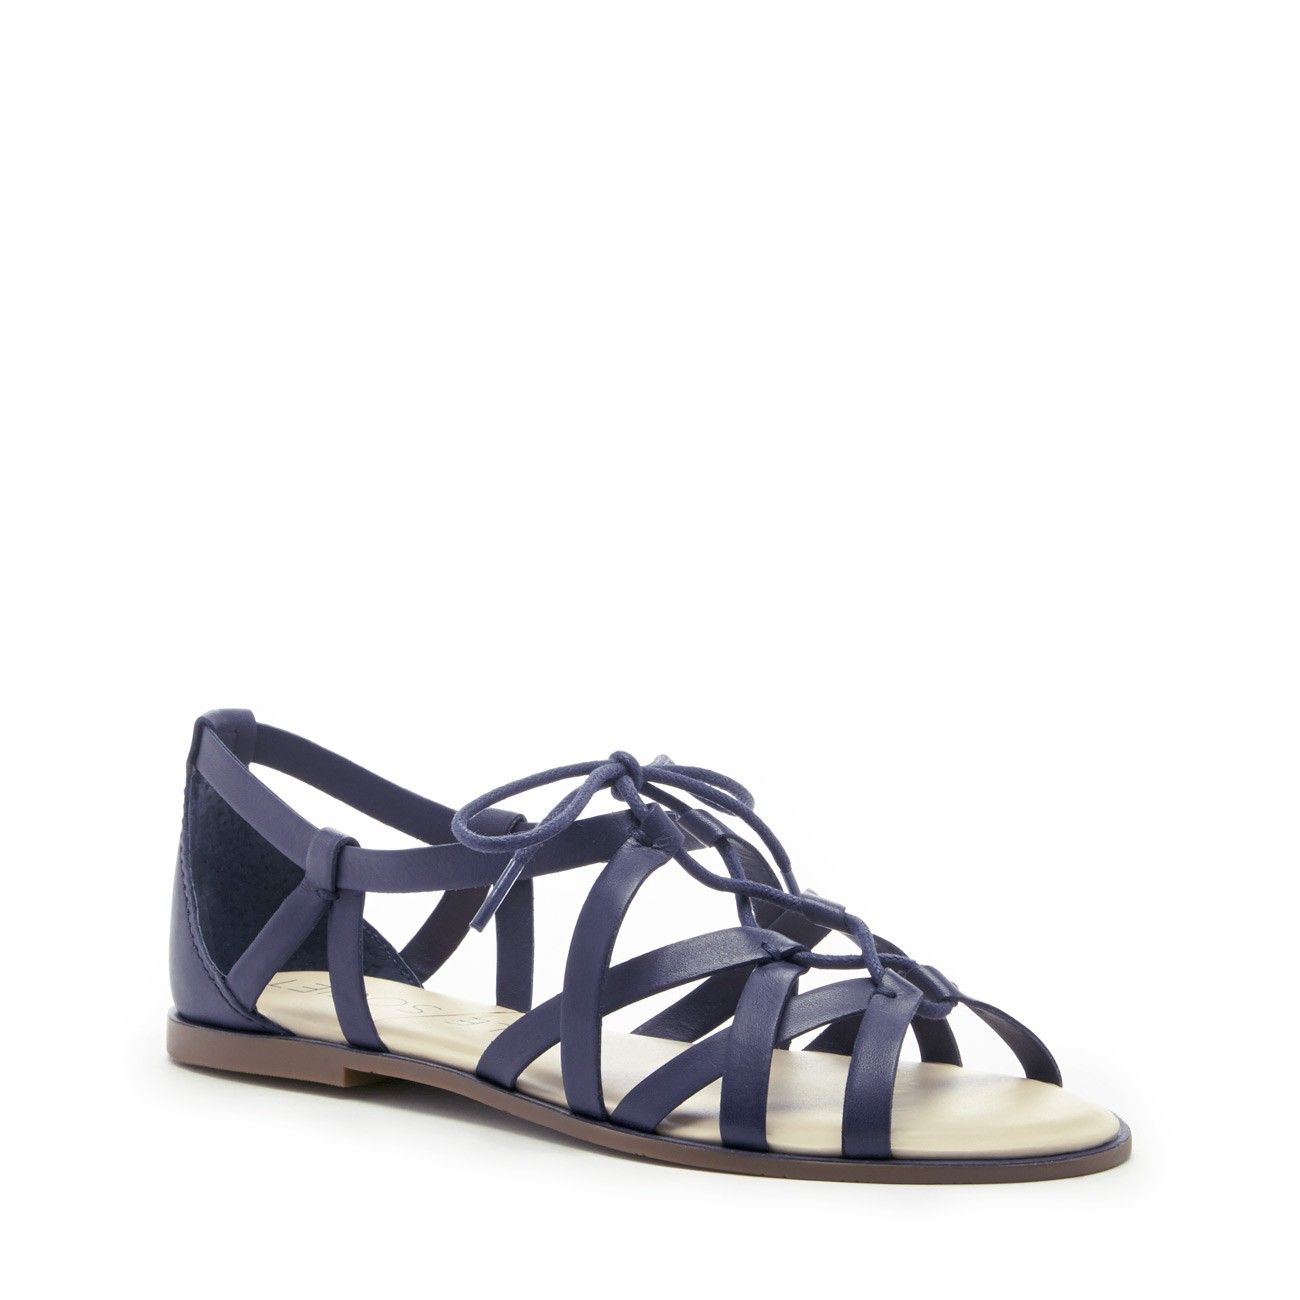 Sole Society - Women's Shoes at Surprisingly Affordable Prices ...